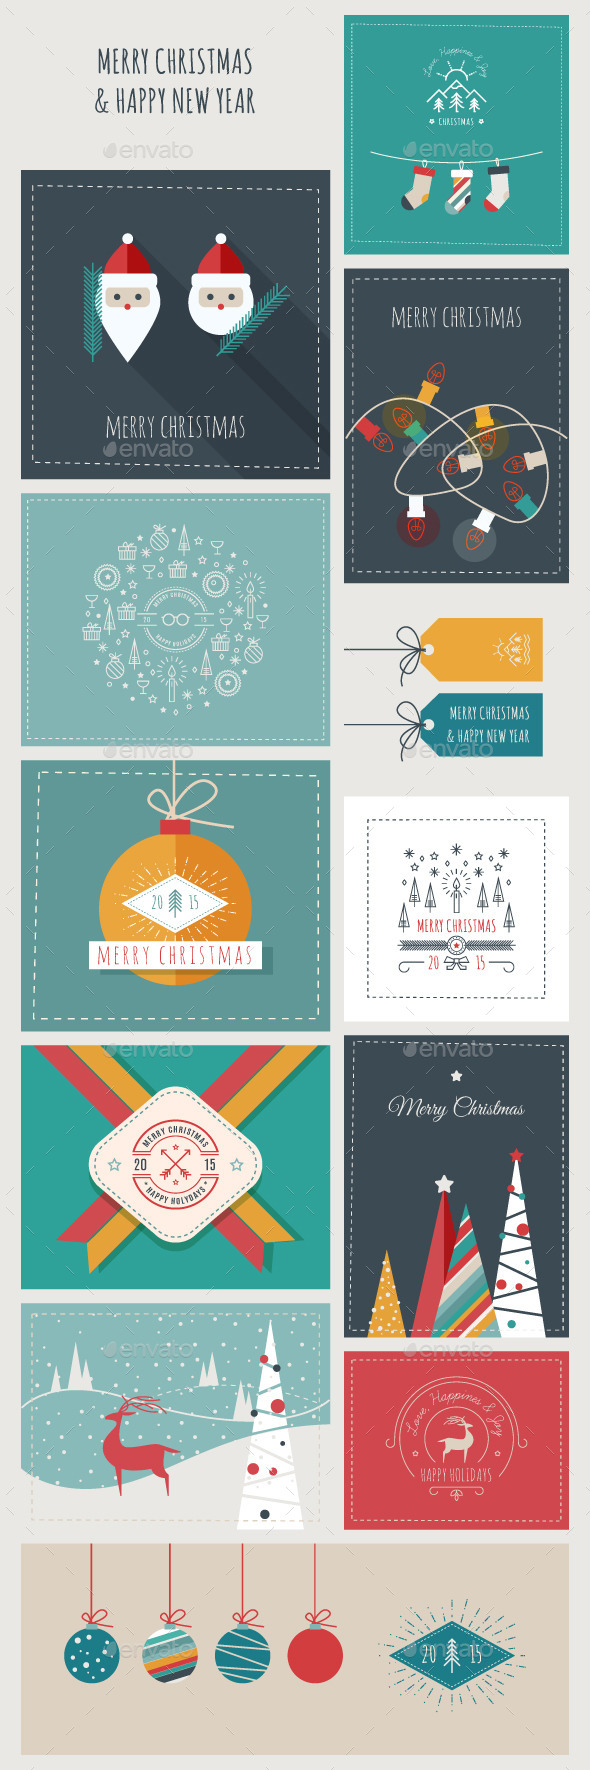 New Year and Christmas Greeting Cards and Banners - Christmas Seasons/Holidays